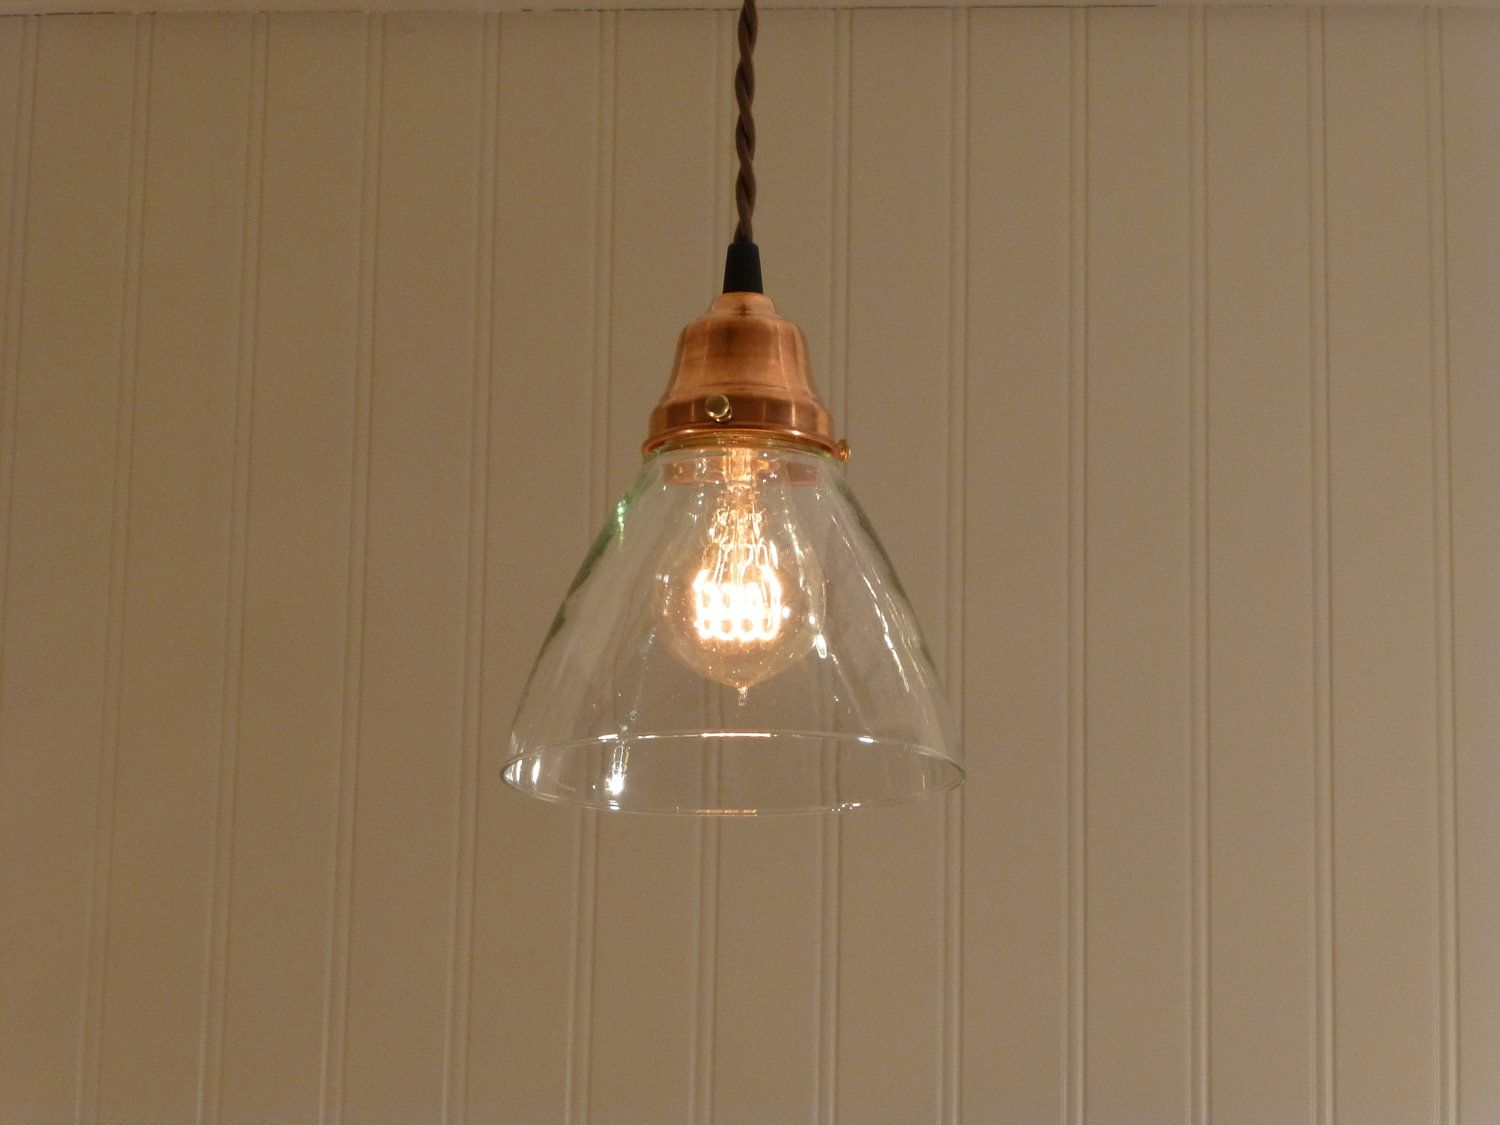 Kitchen Pendant Lighting Glass Shades Copper Pendant Light With Hand Blown Glass Funnel Shade